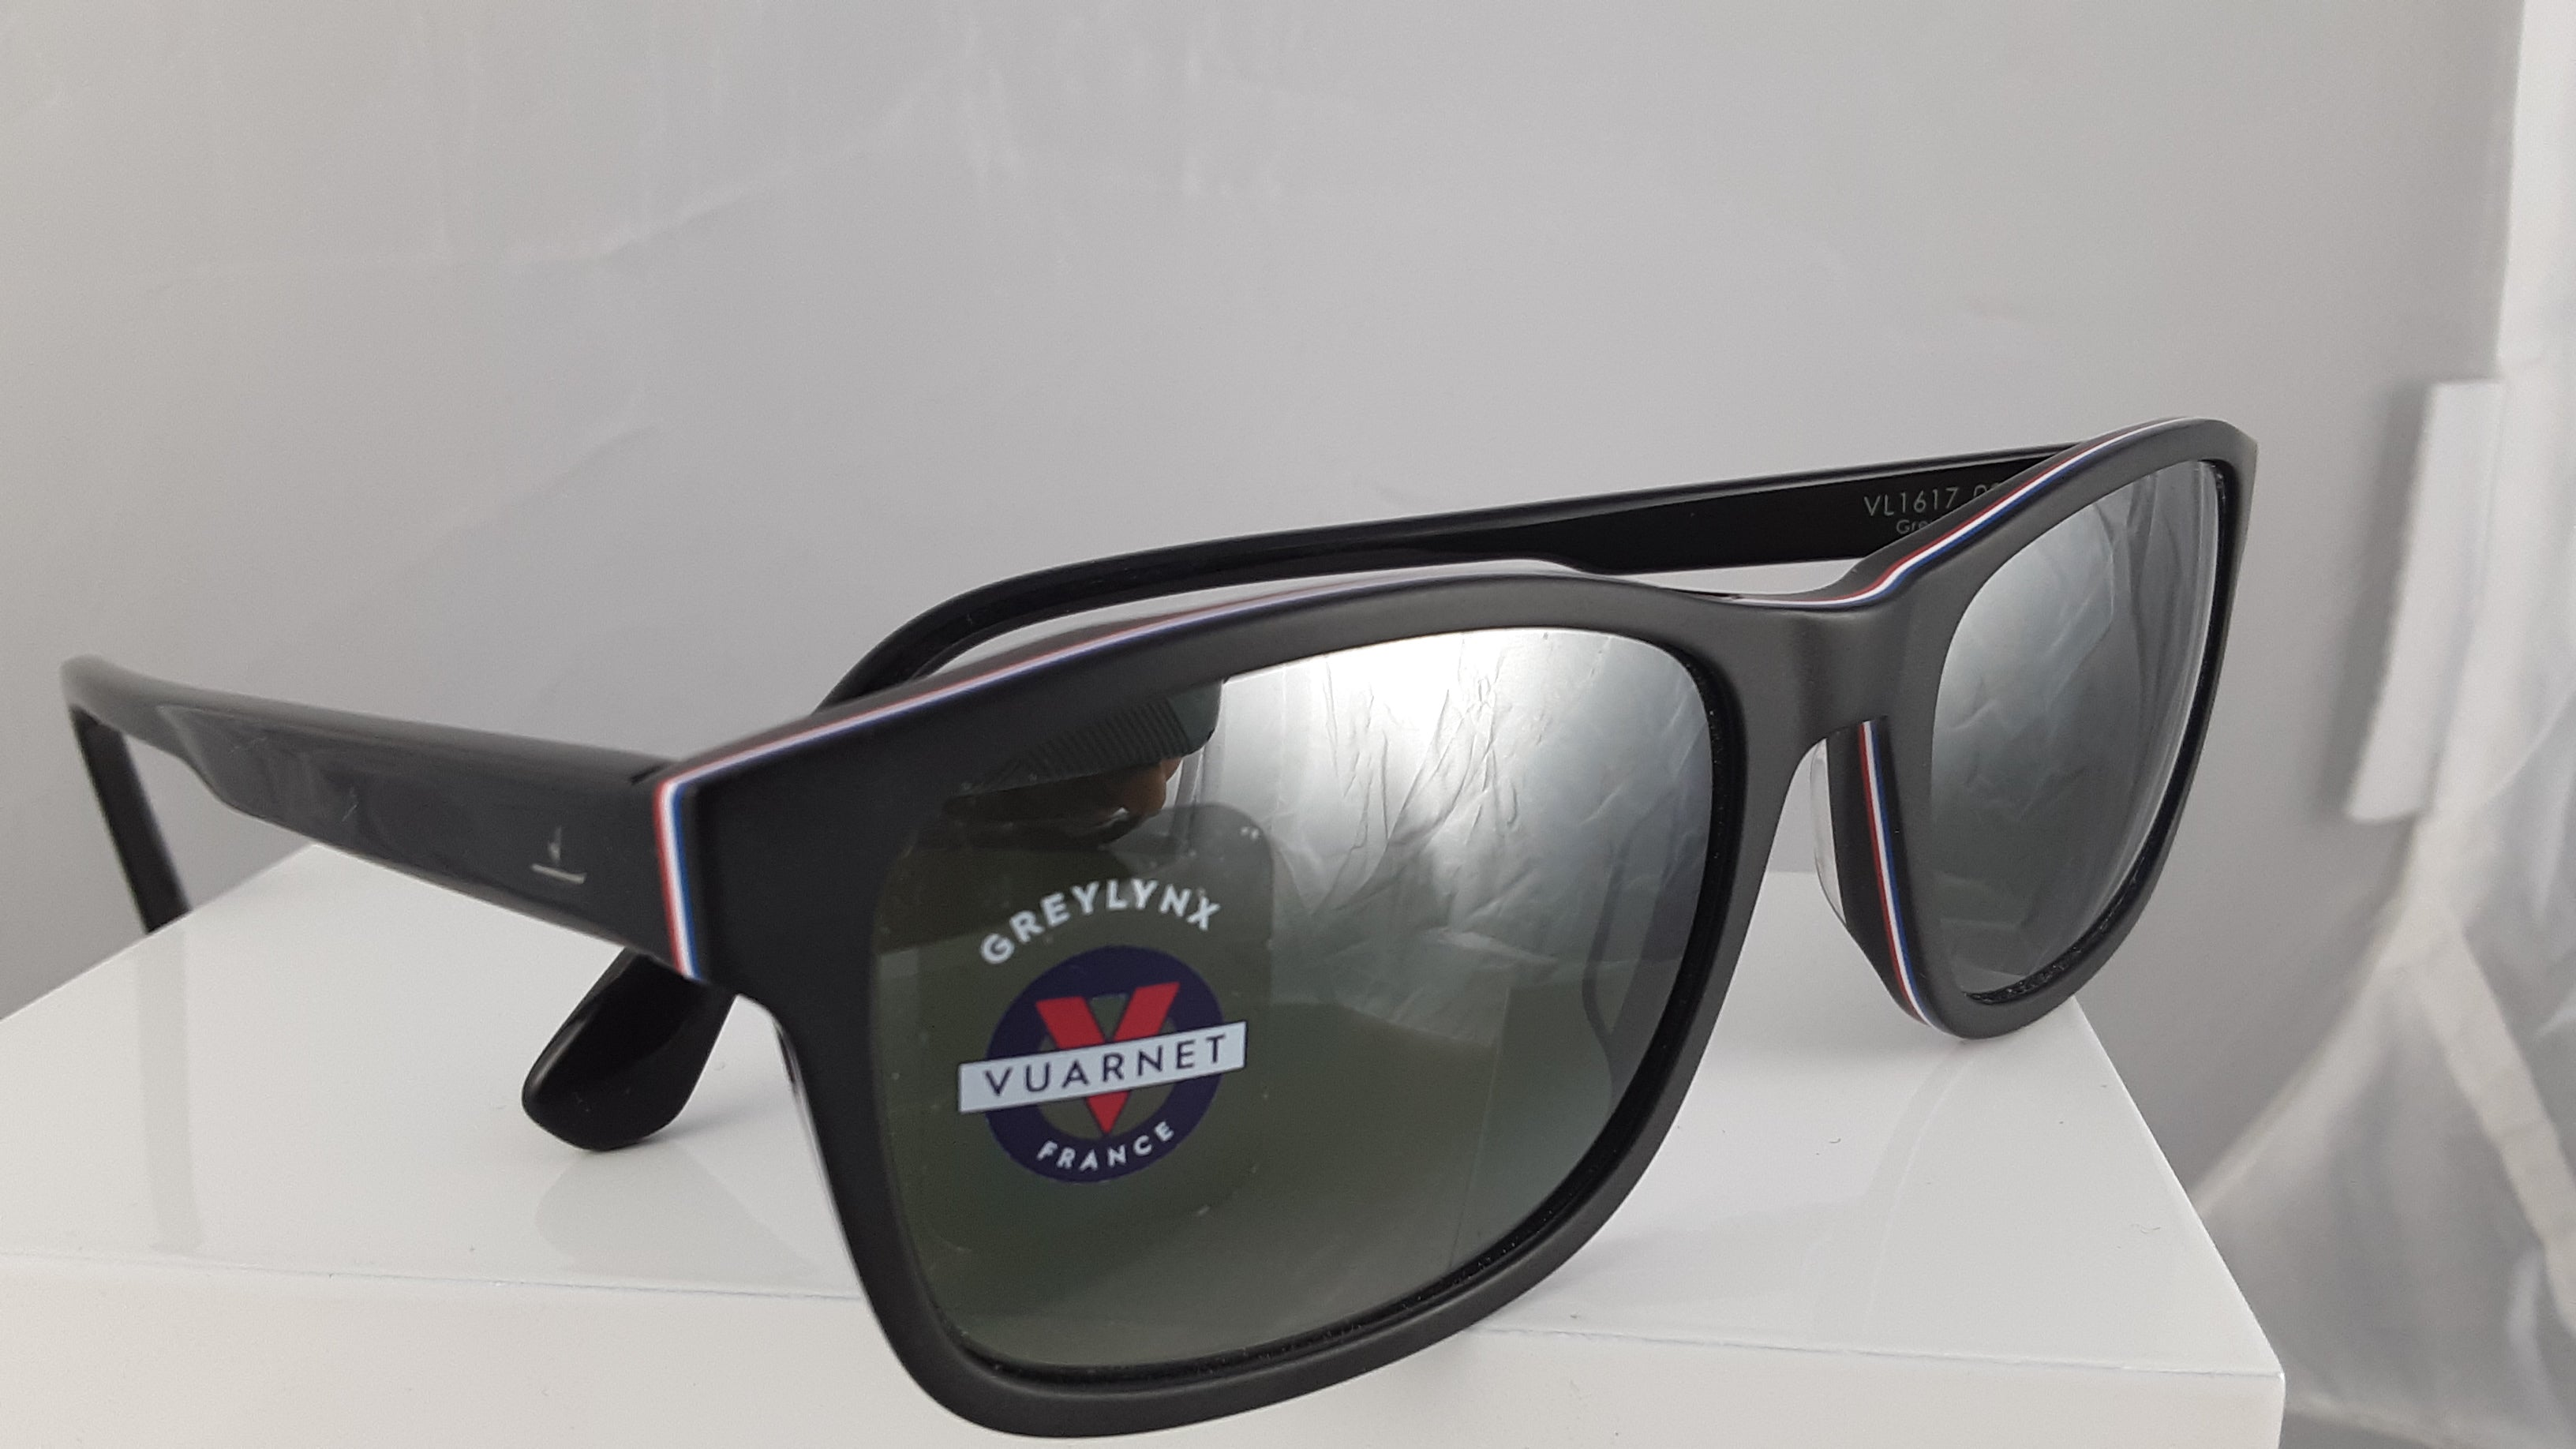 Vuarnet Greylynx black sunglasses with red white and blue stripe